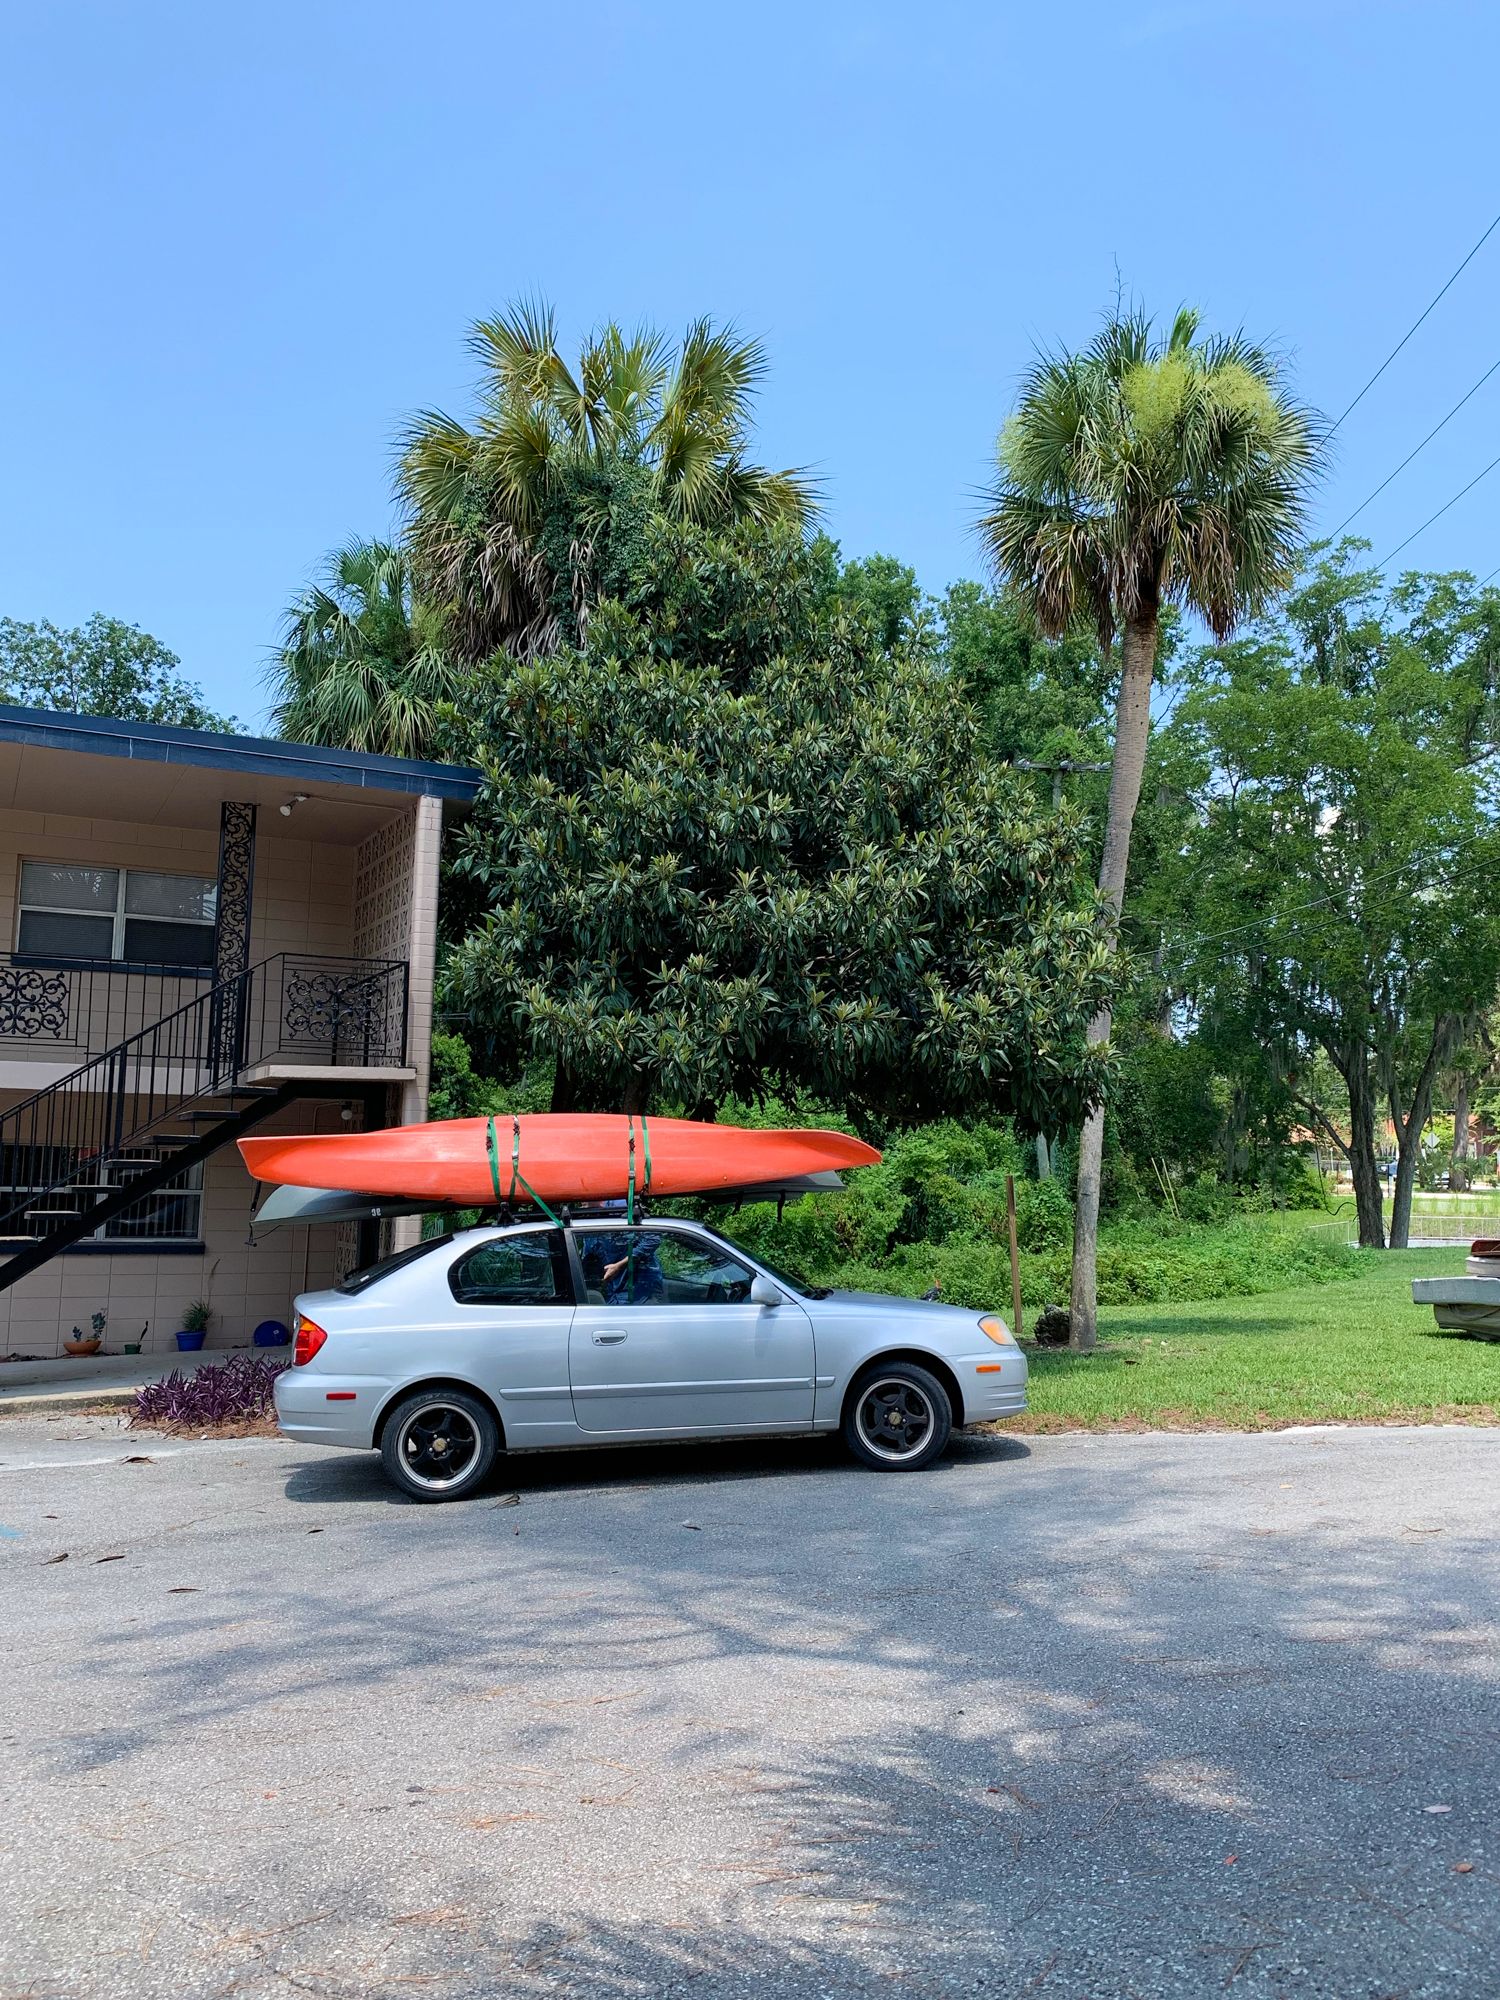 Our kayaks loaded on the roof of Alex's Hyundai Accent.